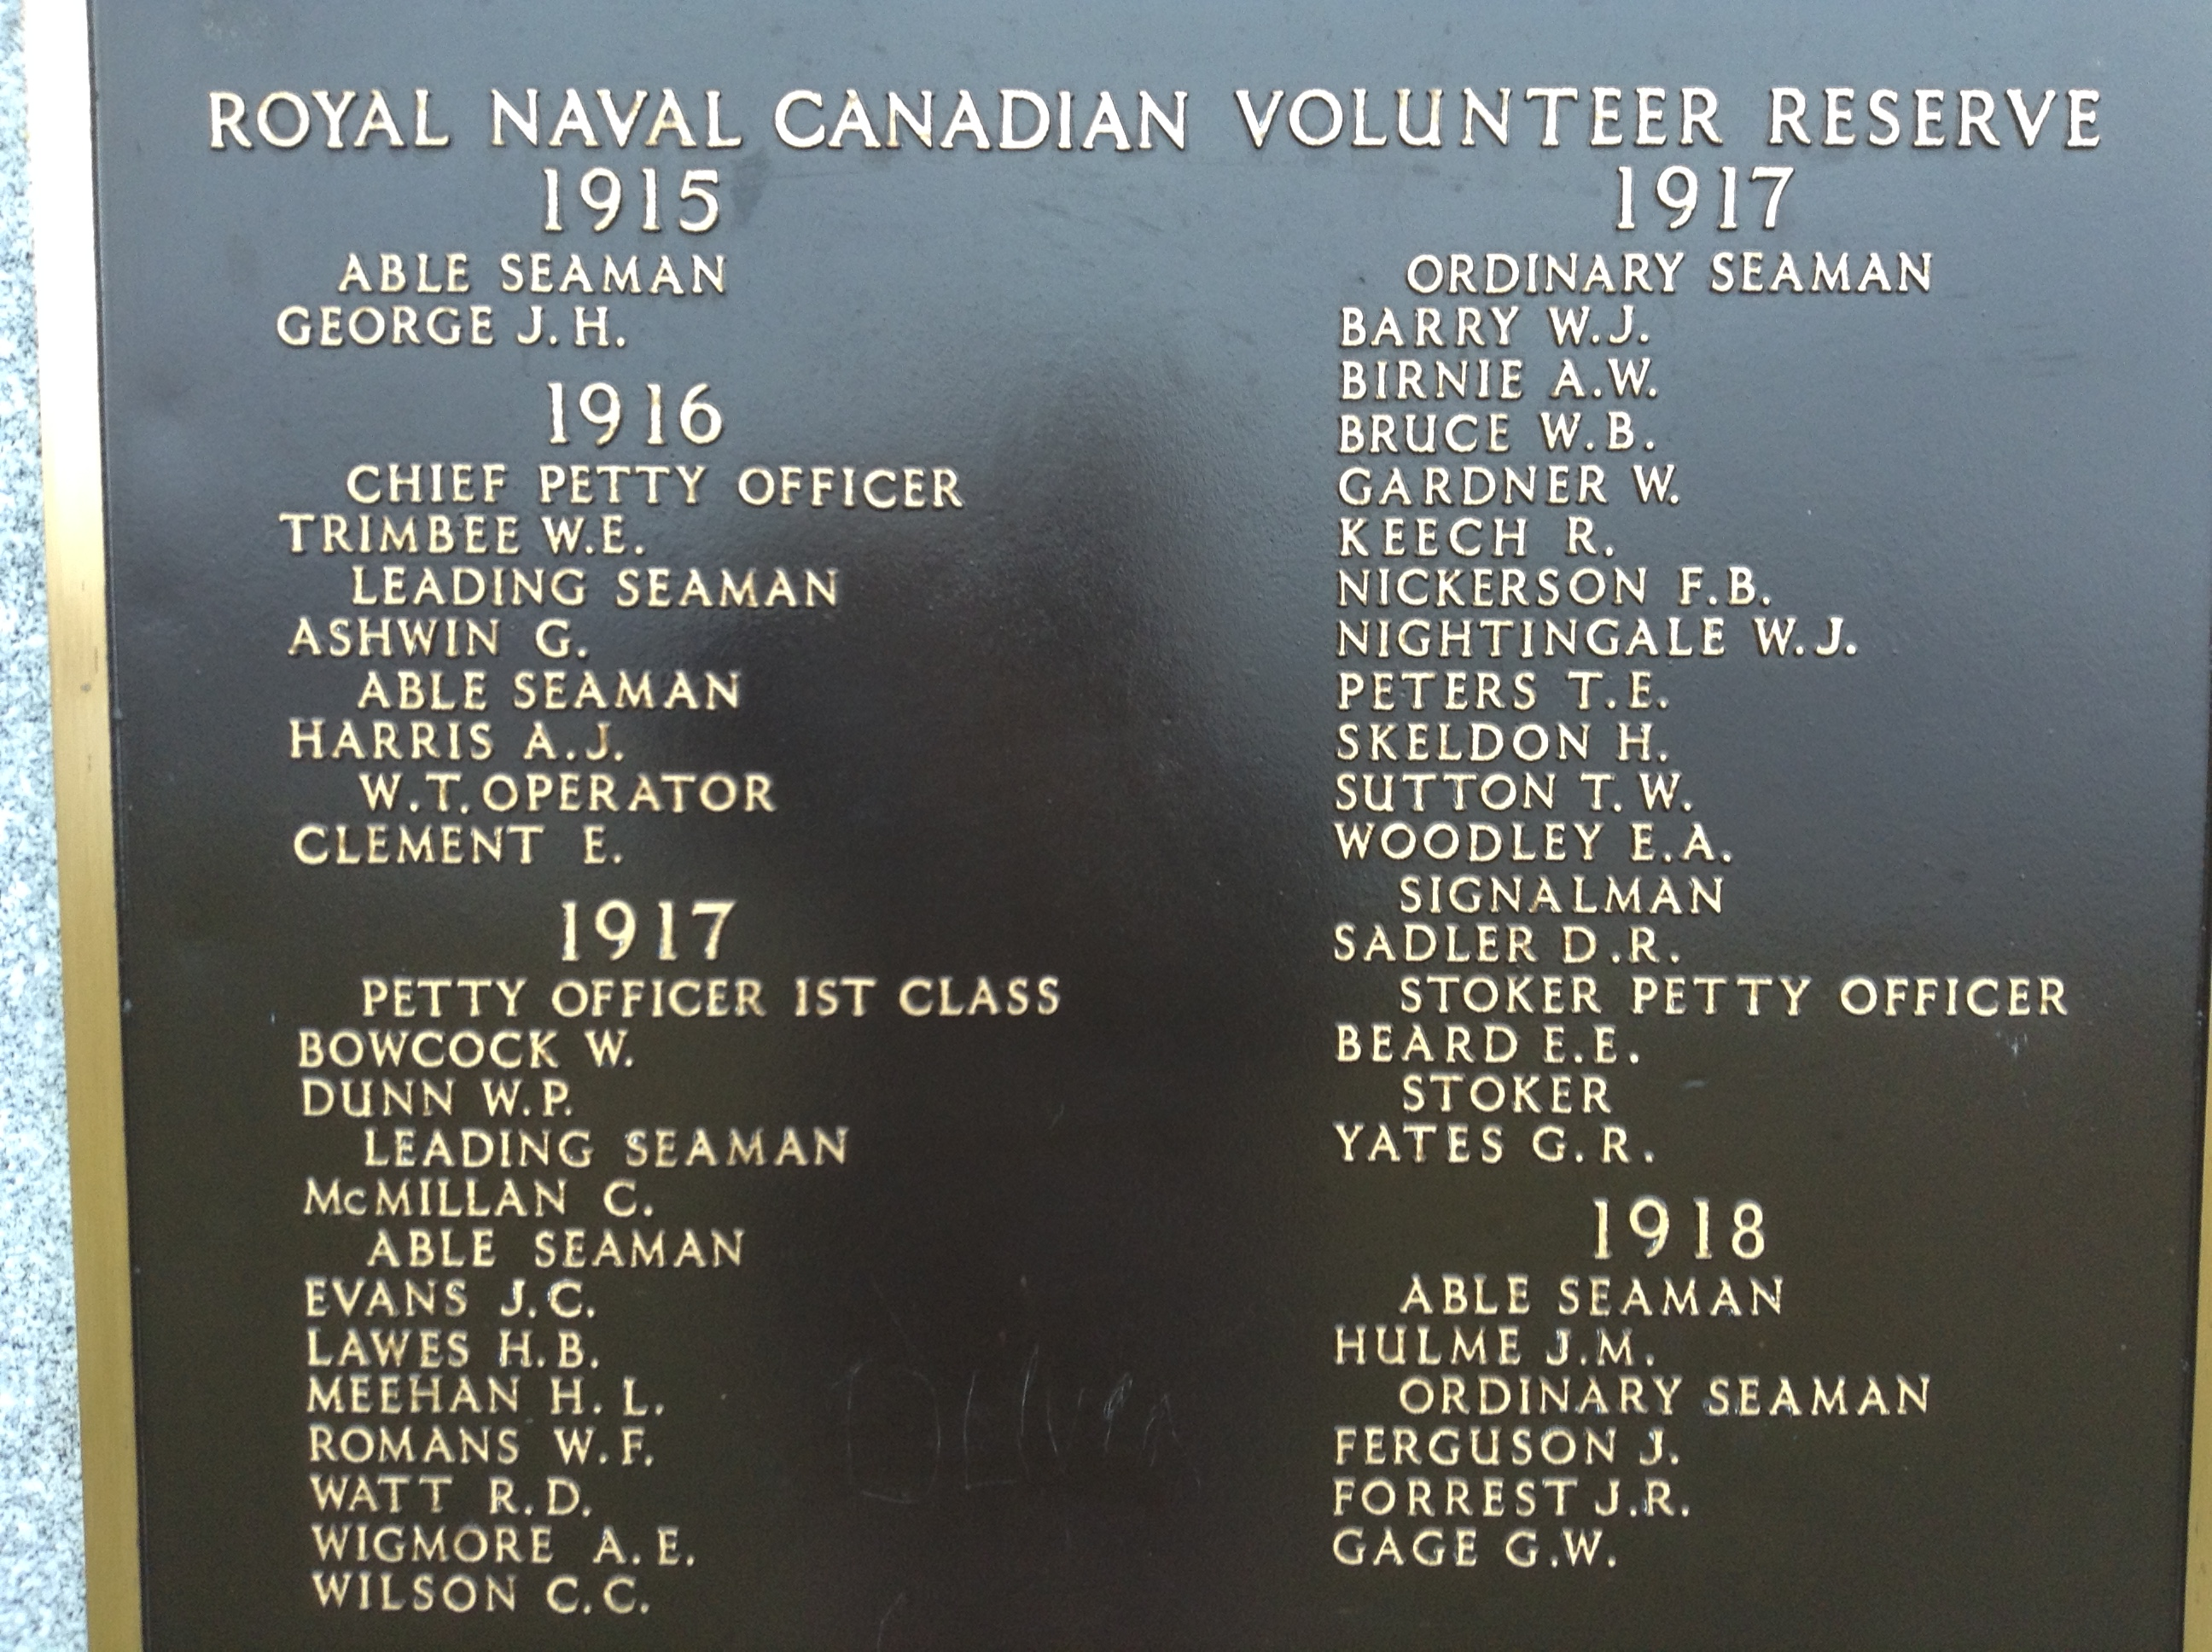 Memorial– The panel on the Halifax Memorial at Point Pleasant in Halifax, Nova Scotia, Canada with Walter Gardner's name inscribed. Image taken November 2017 by Tom Tulloch.